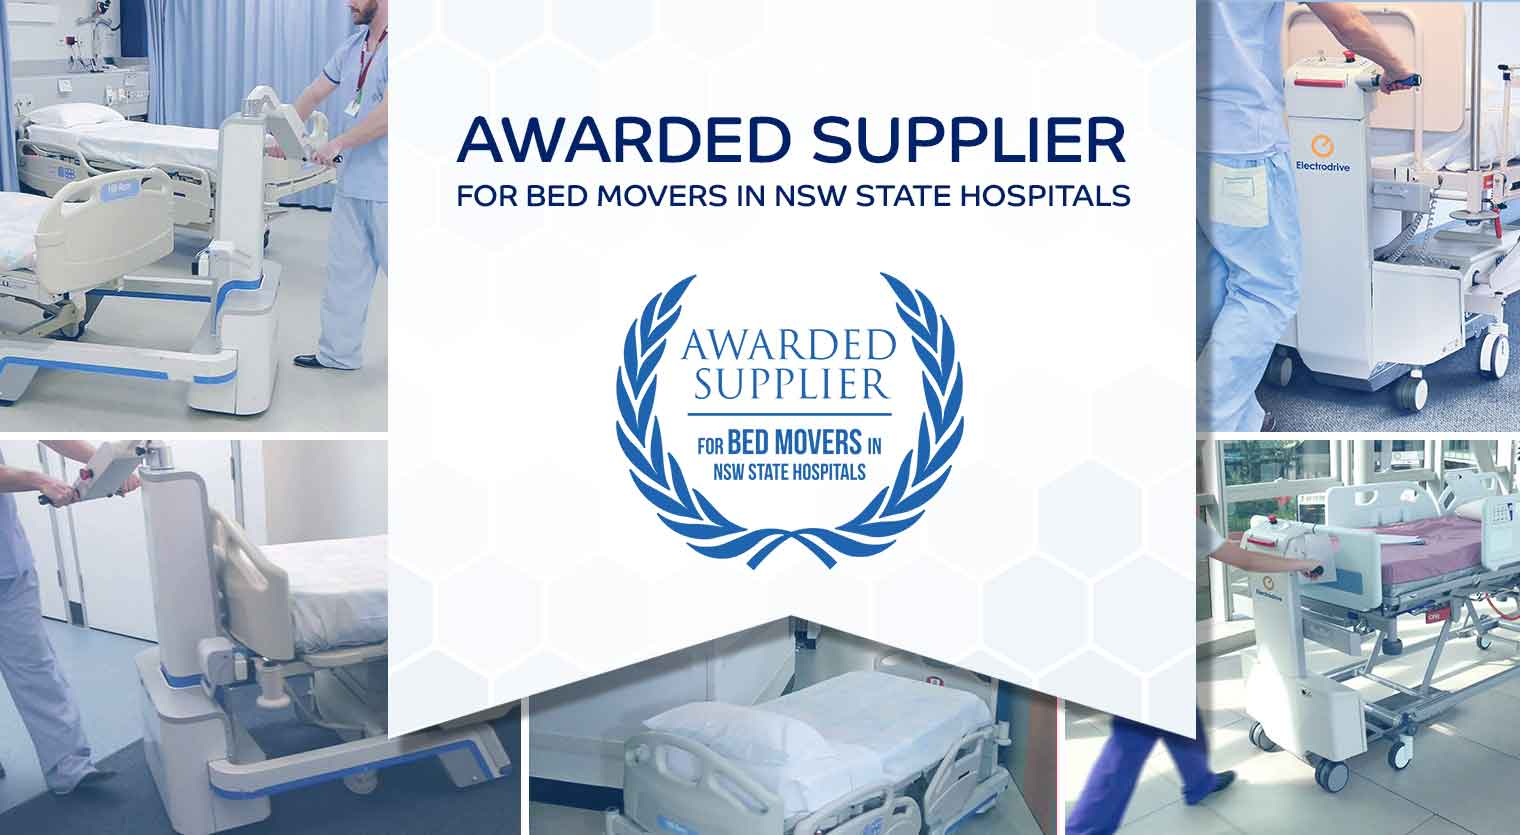 Awarded supplier for bed movers in NSW state hospitals